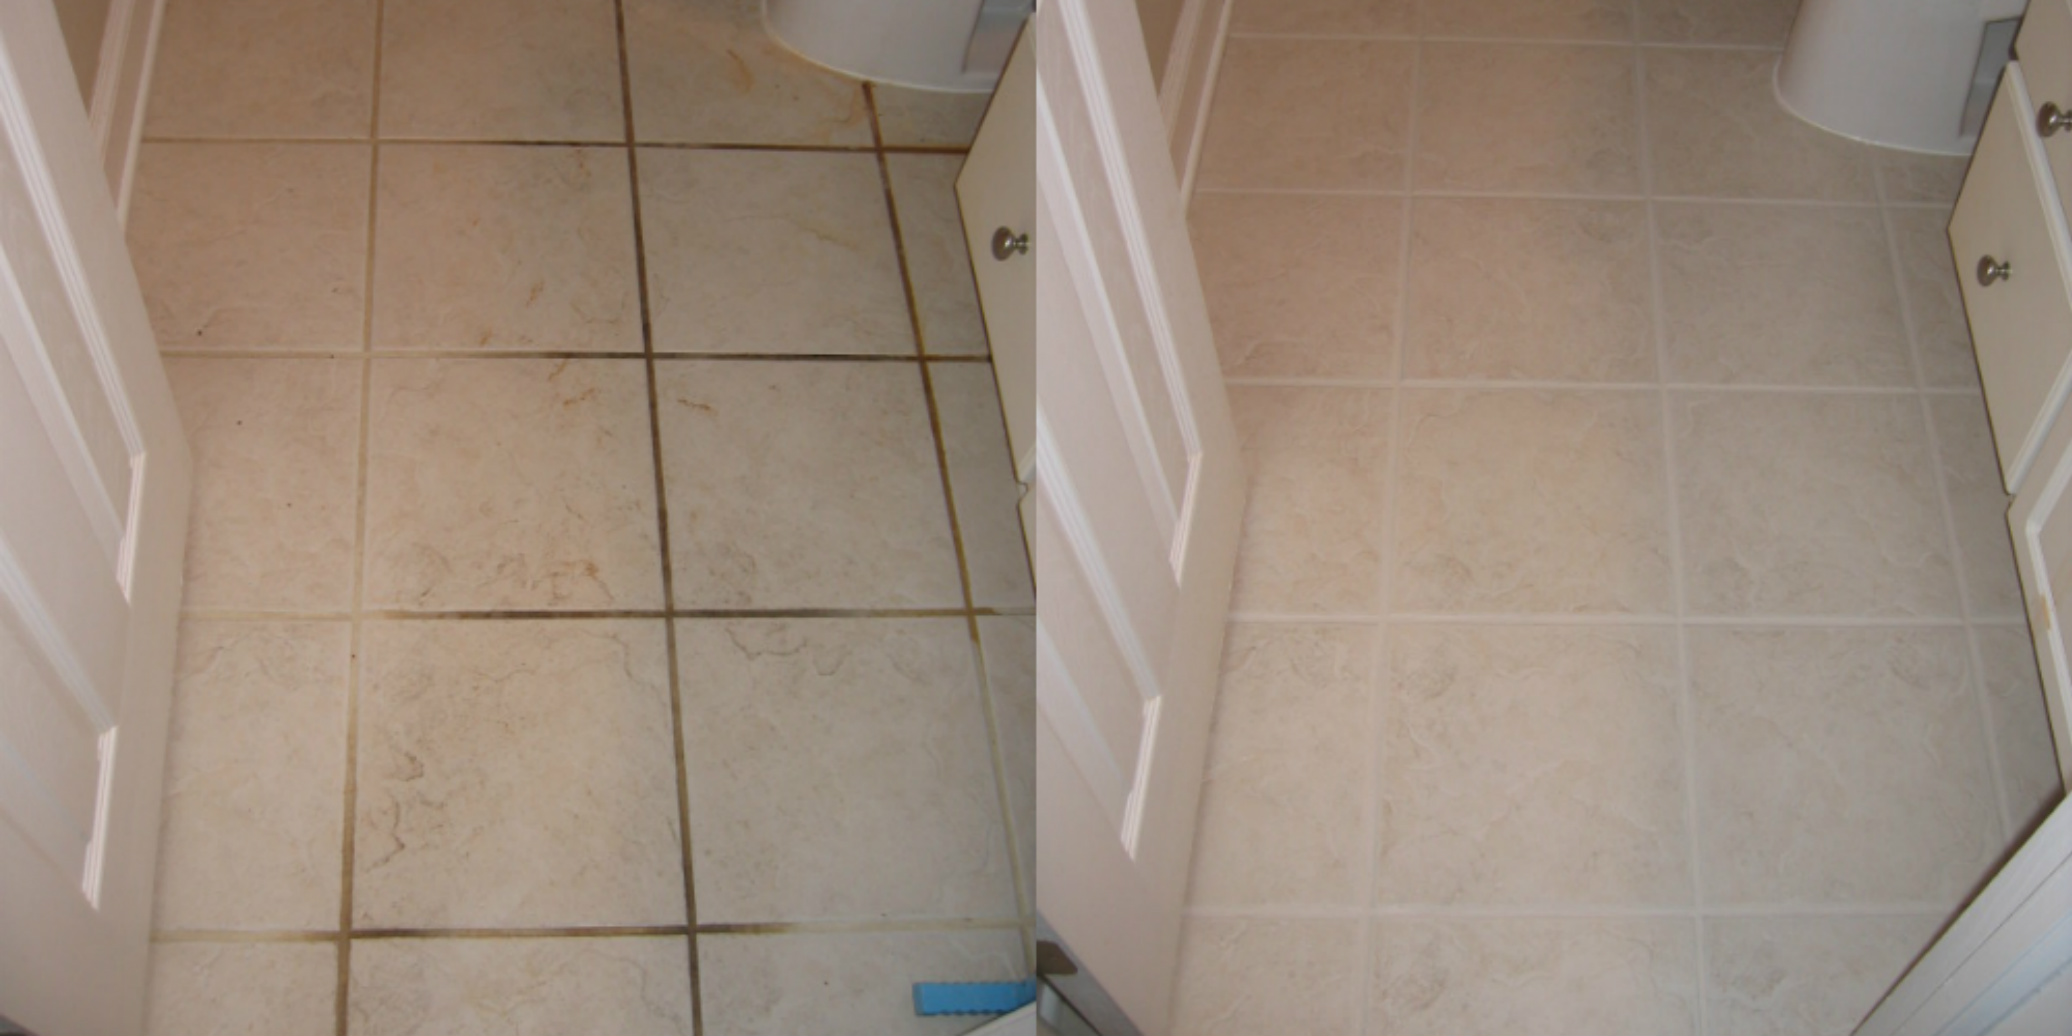 Tile and Grout Cleaning Brisbane - Best Tile Cleaners Brisbane